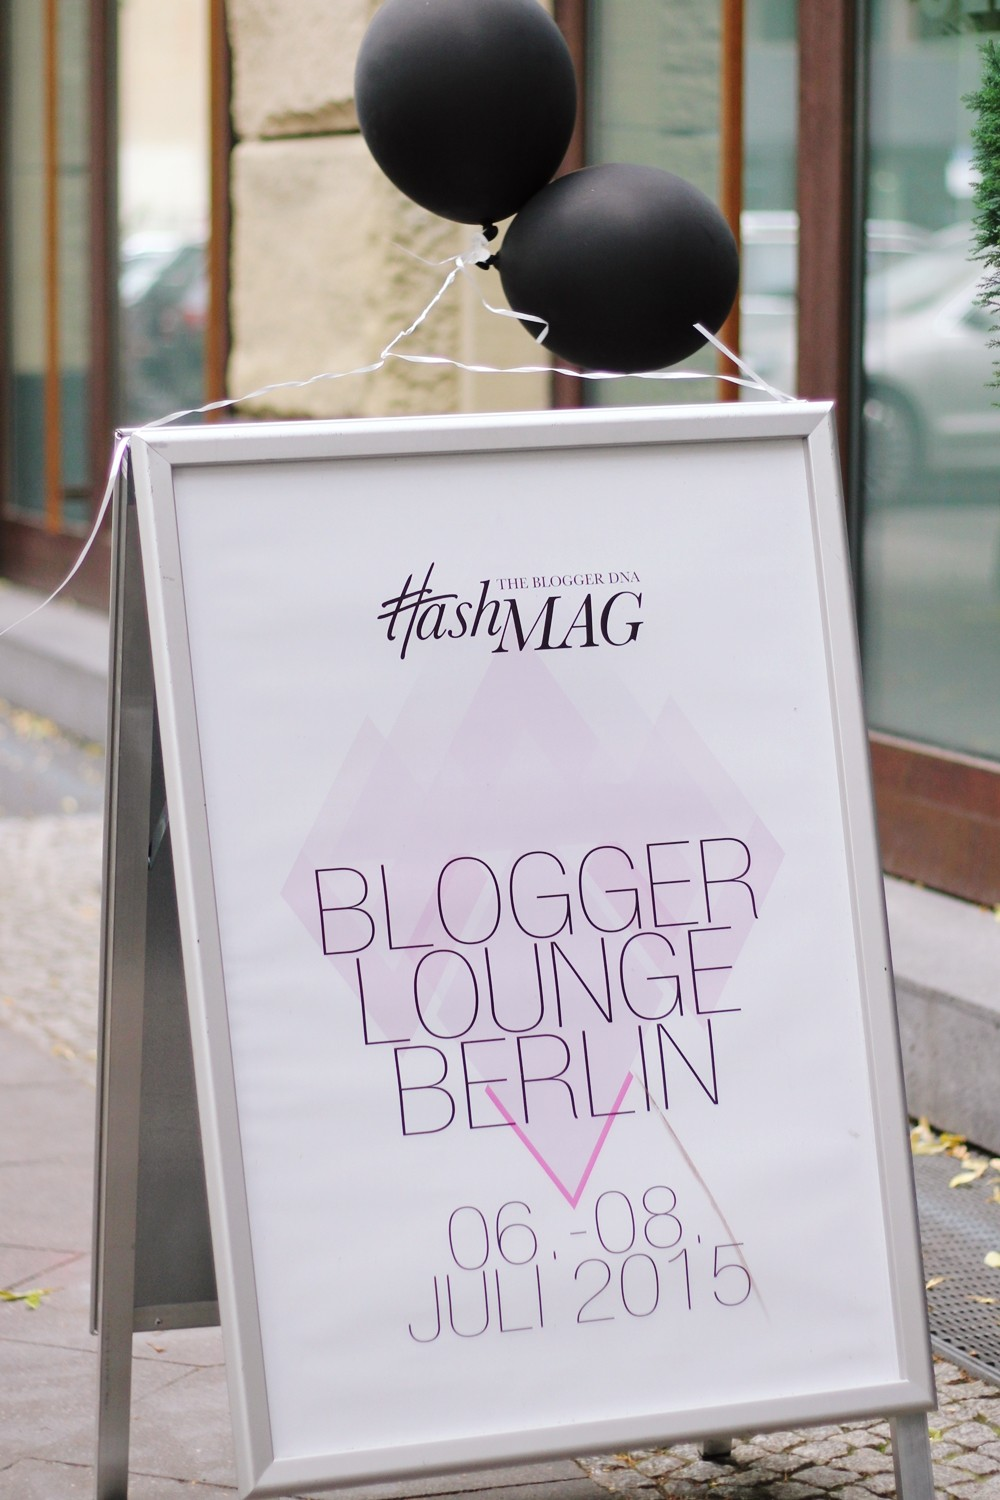 Hashmag Blogger Lounge Berlin